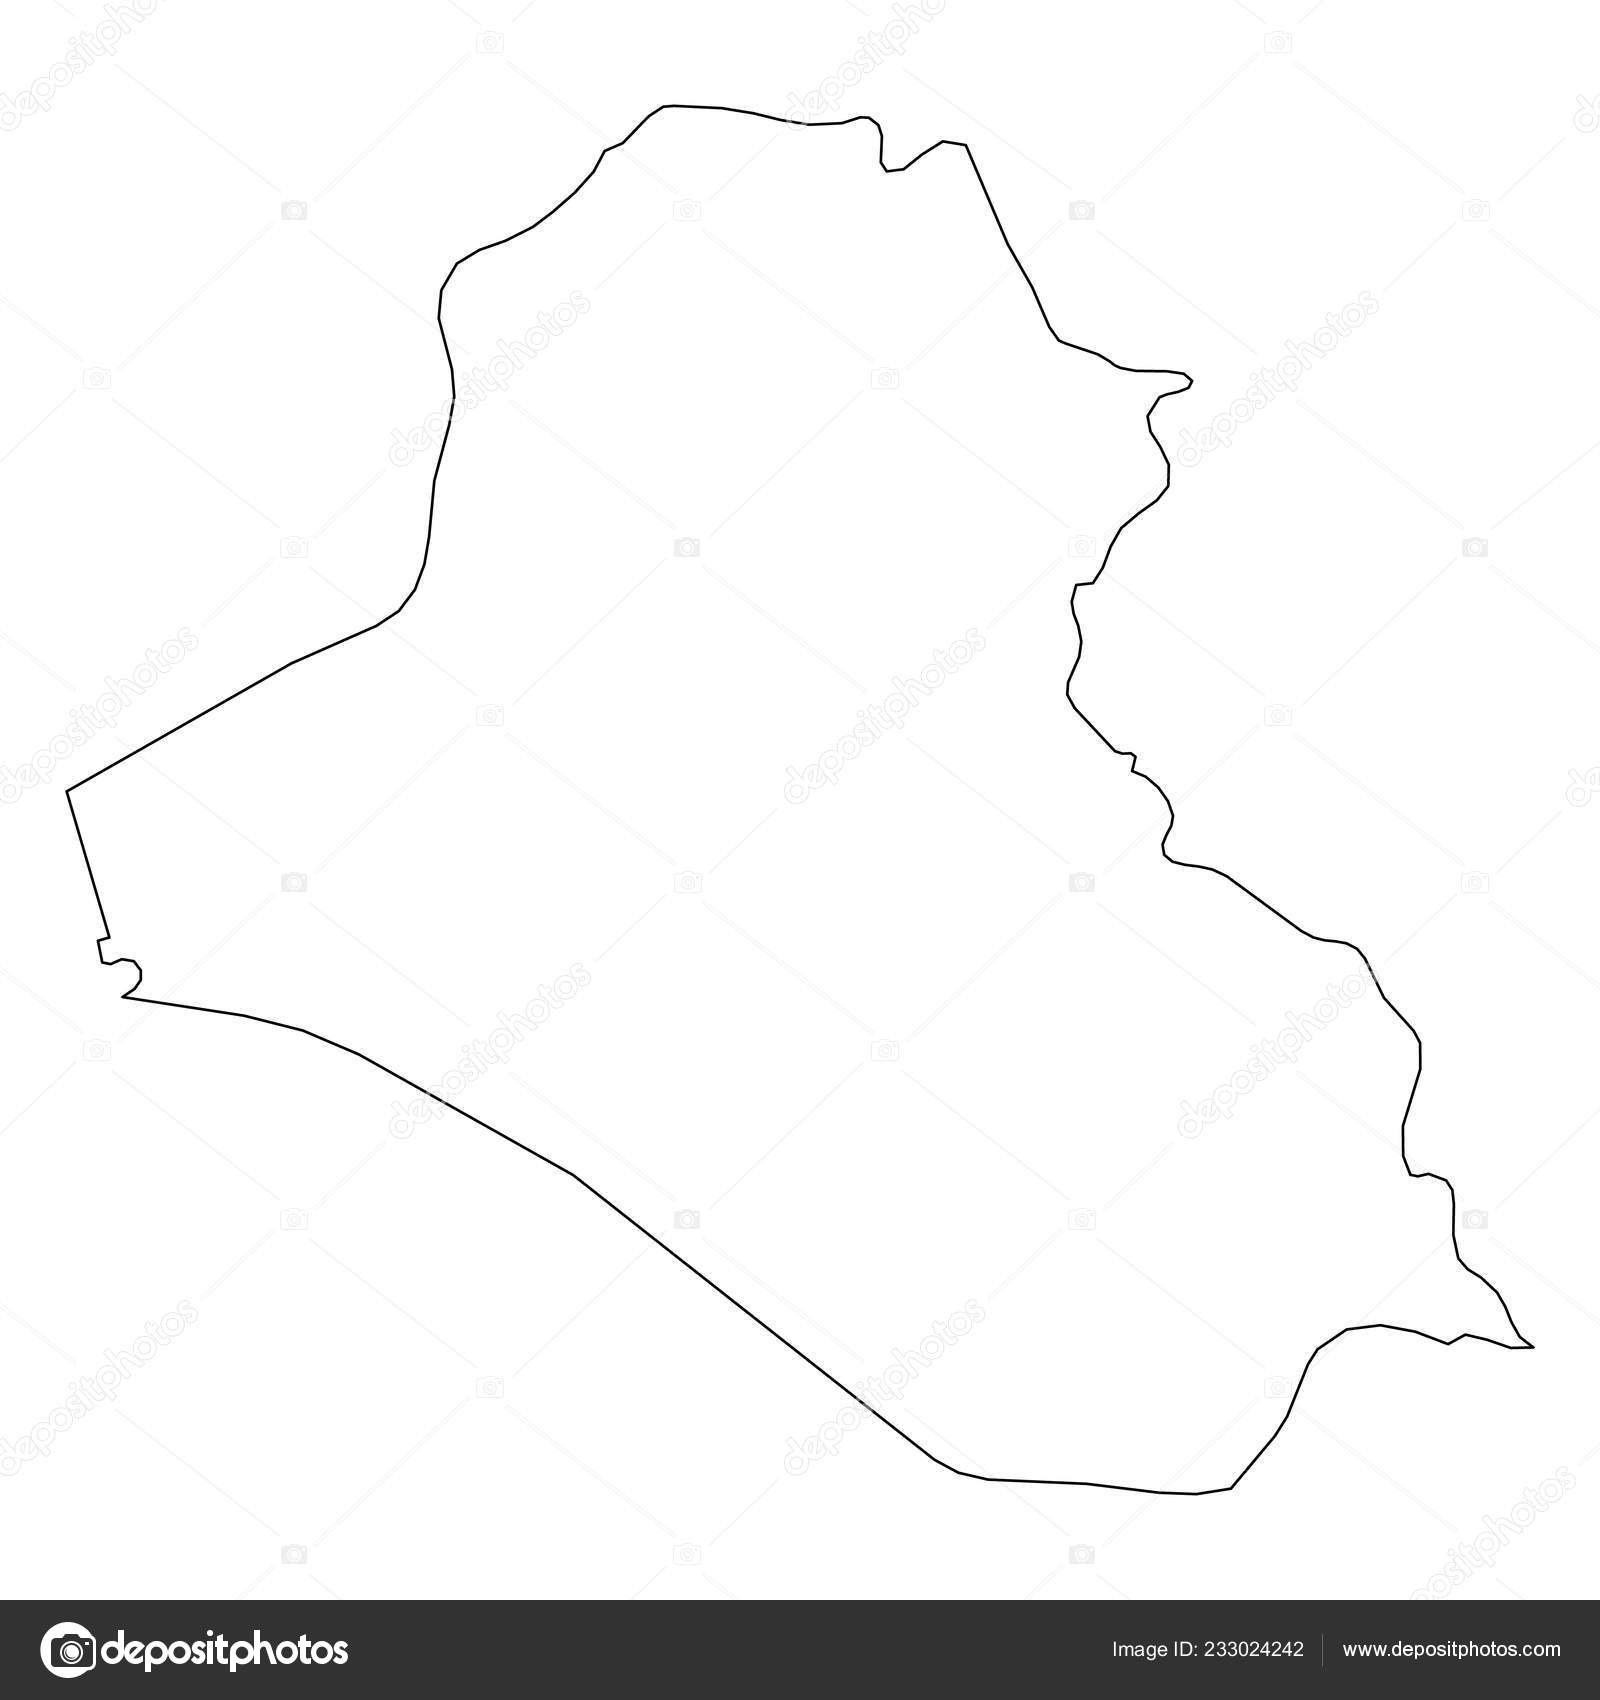 Iraq - solid black outline border map of country area  Simple flat